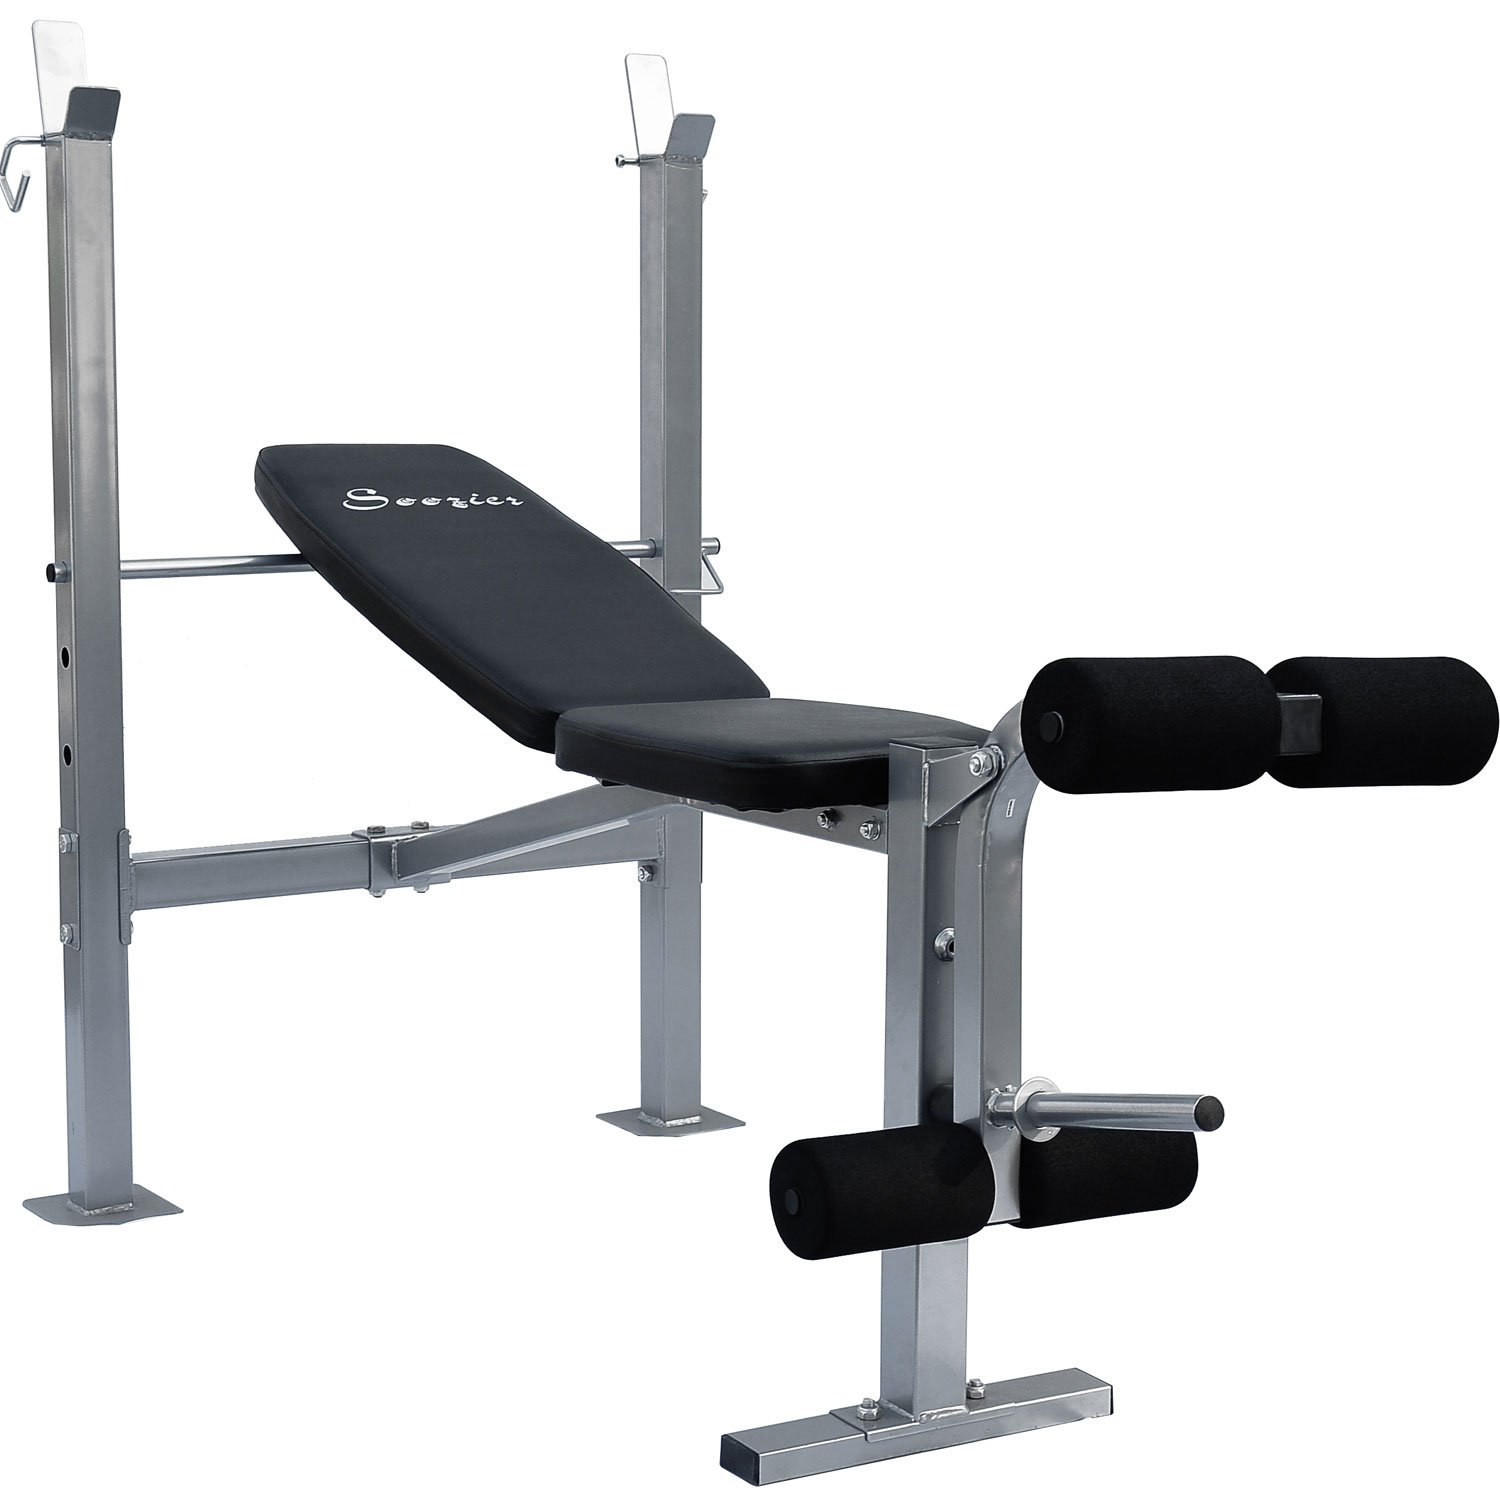 bench weight benches pythagorean flat reviews best health of deluxe marcy standard comparisons